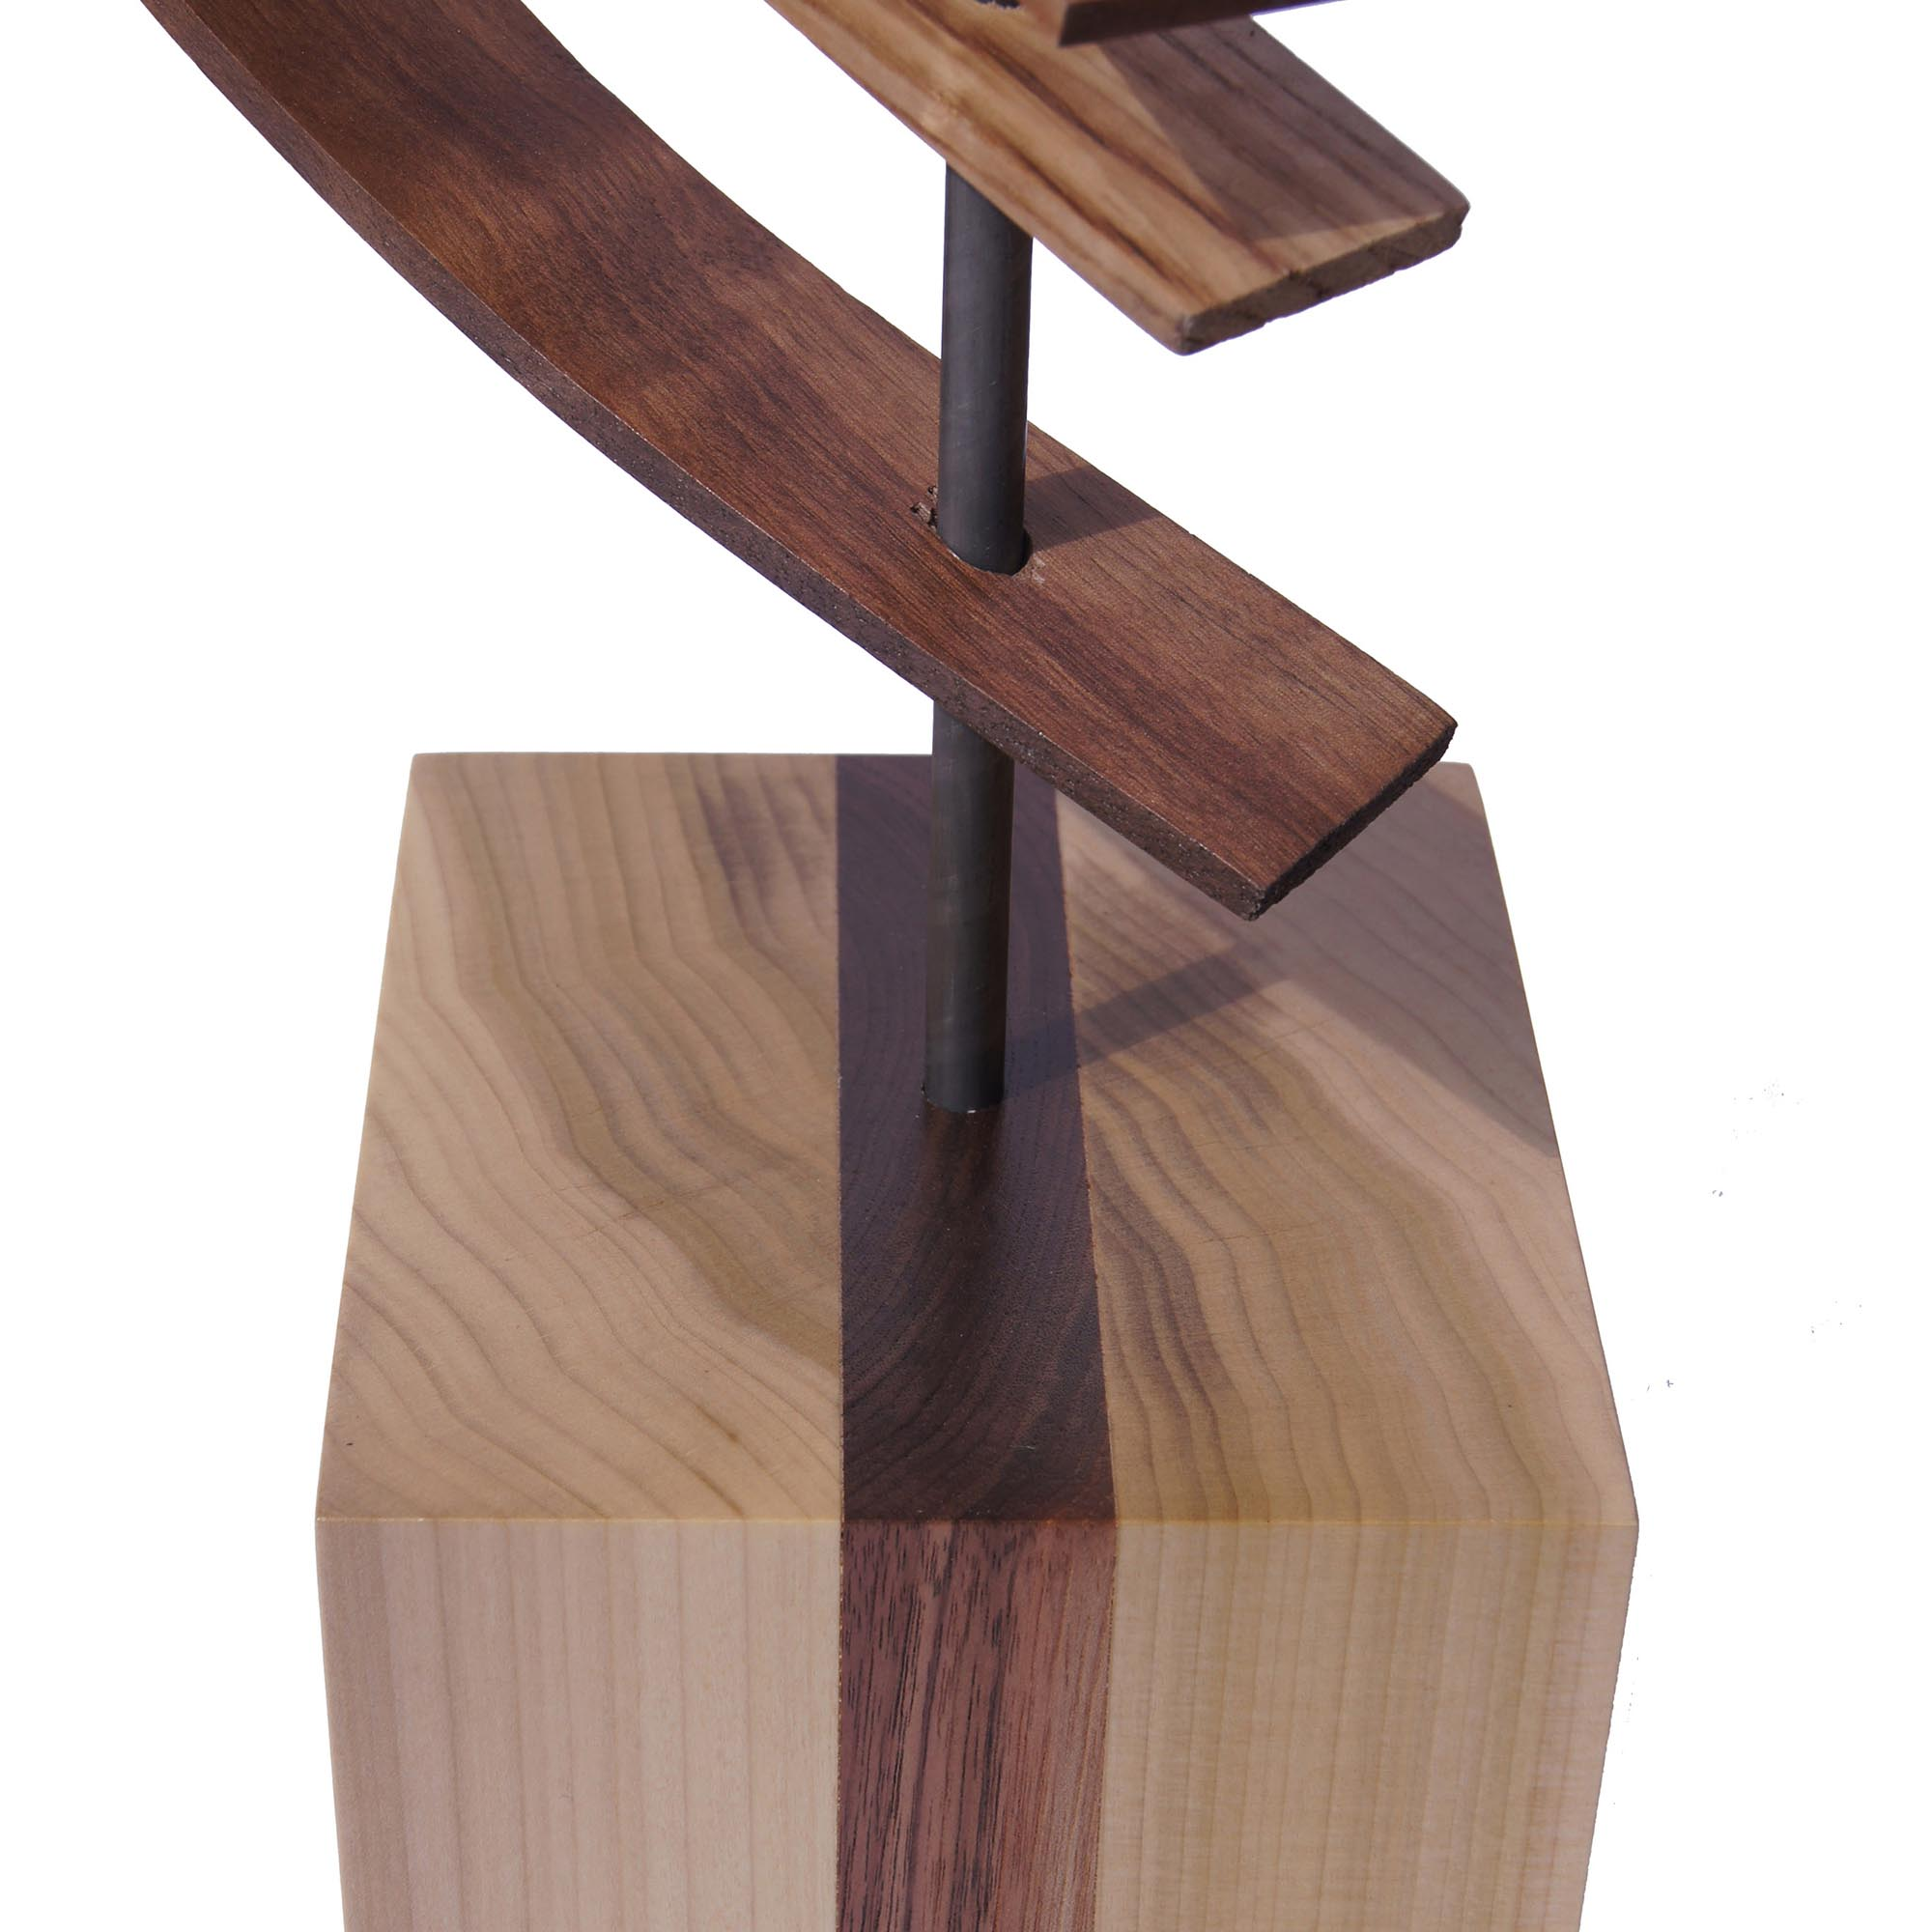 Ascension by Jeff Linenkugel - Modern Wood Sculpture on Natural Wood - Image 3